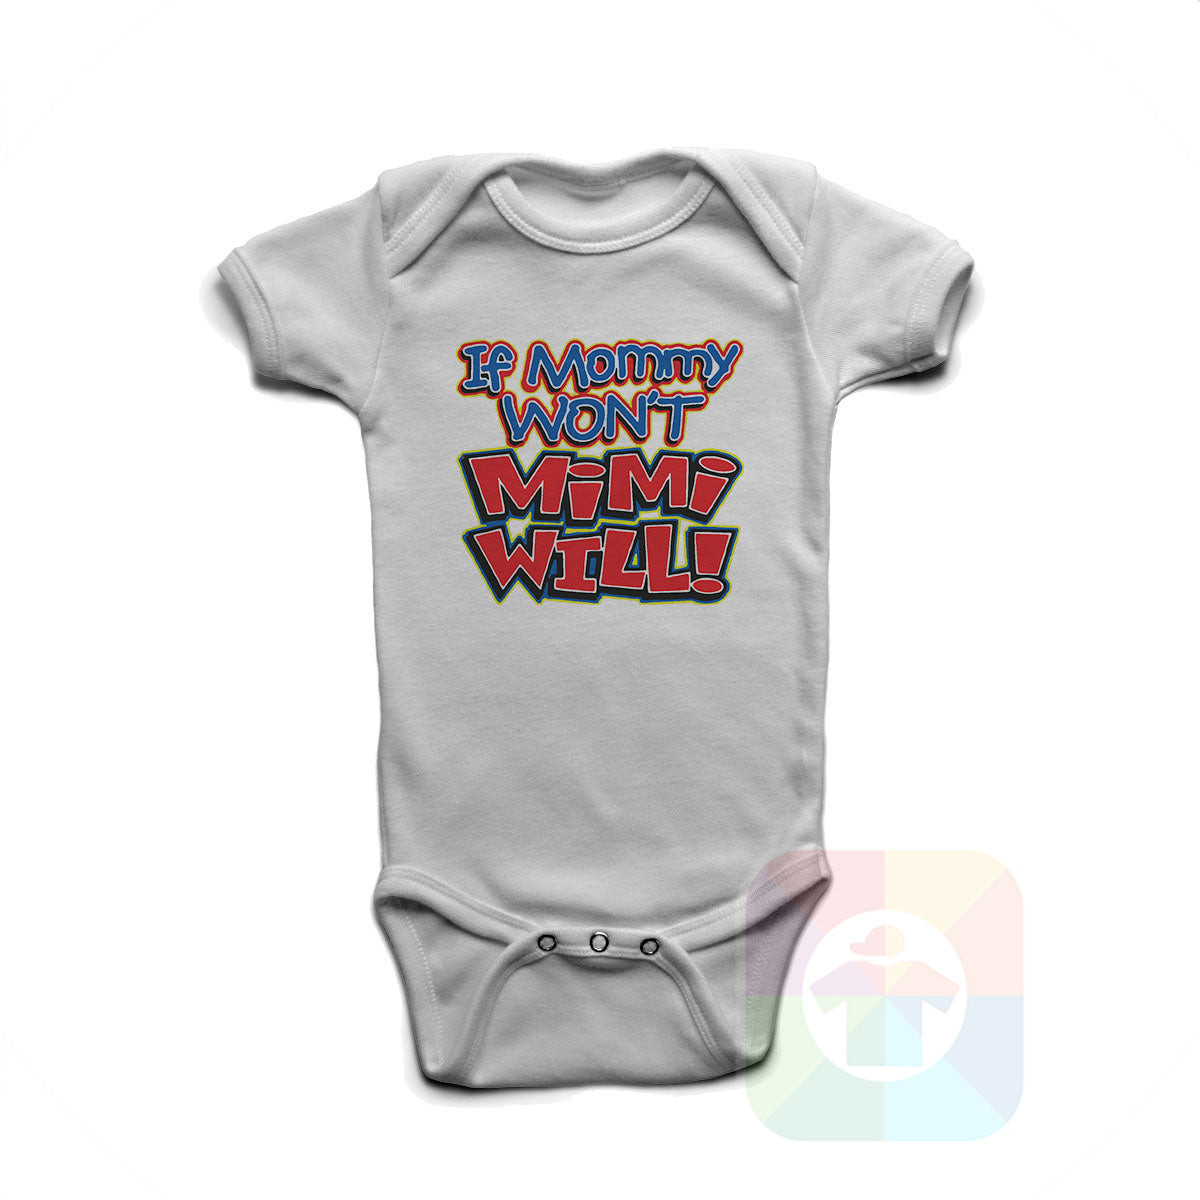 A WHITE Baby Onesie with the  ' Baby onesie 'IF MOMMY WONT MY MIMI WILL' kids funny novelty design. #8206 / New Born, 6m, 12m, 24m Sizes ' design.